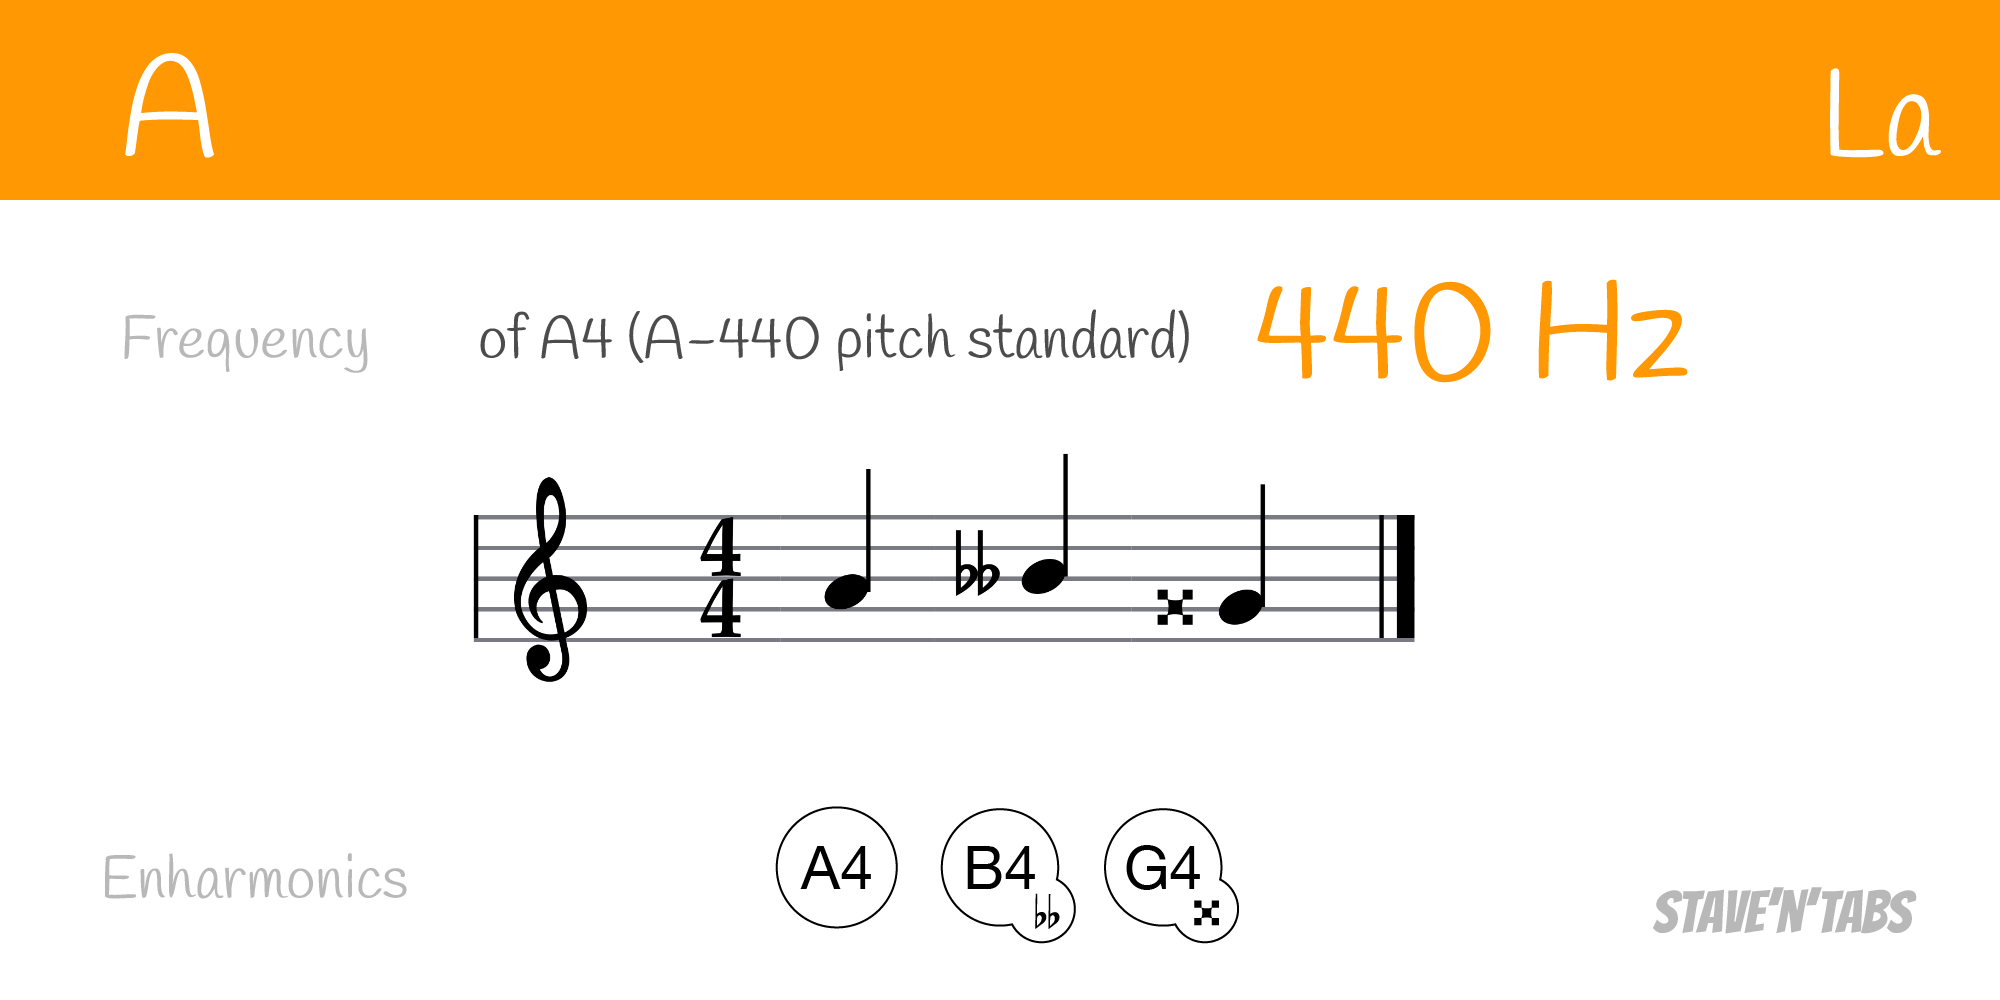 Enharmonic equivalents for the note A